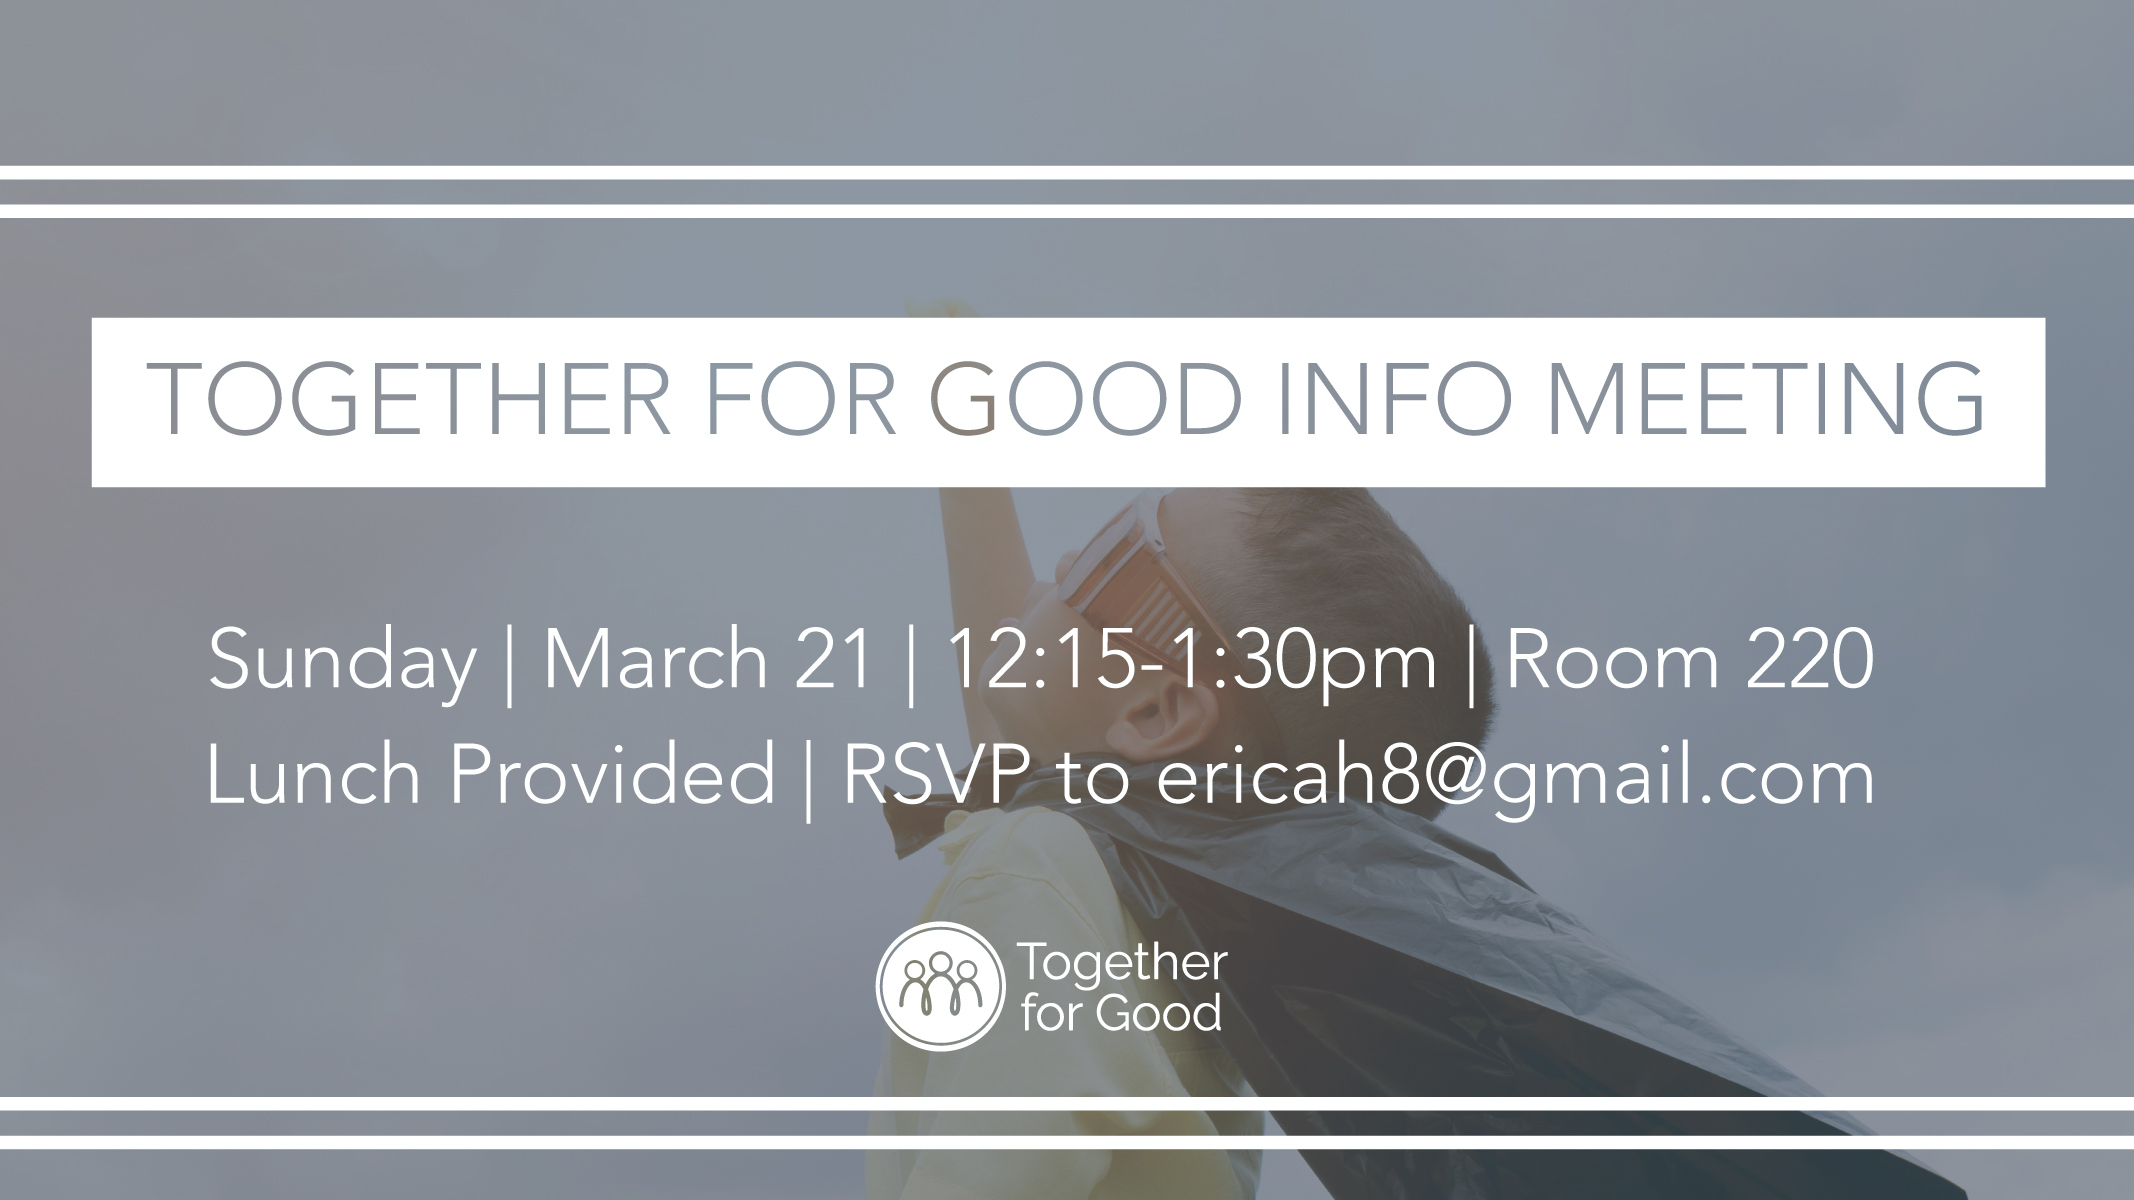 Together for Good_2021 Event-01